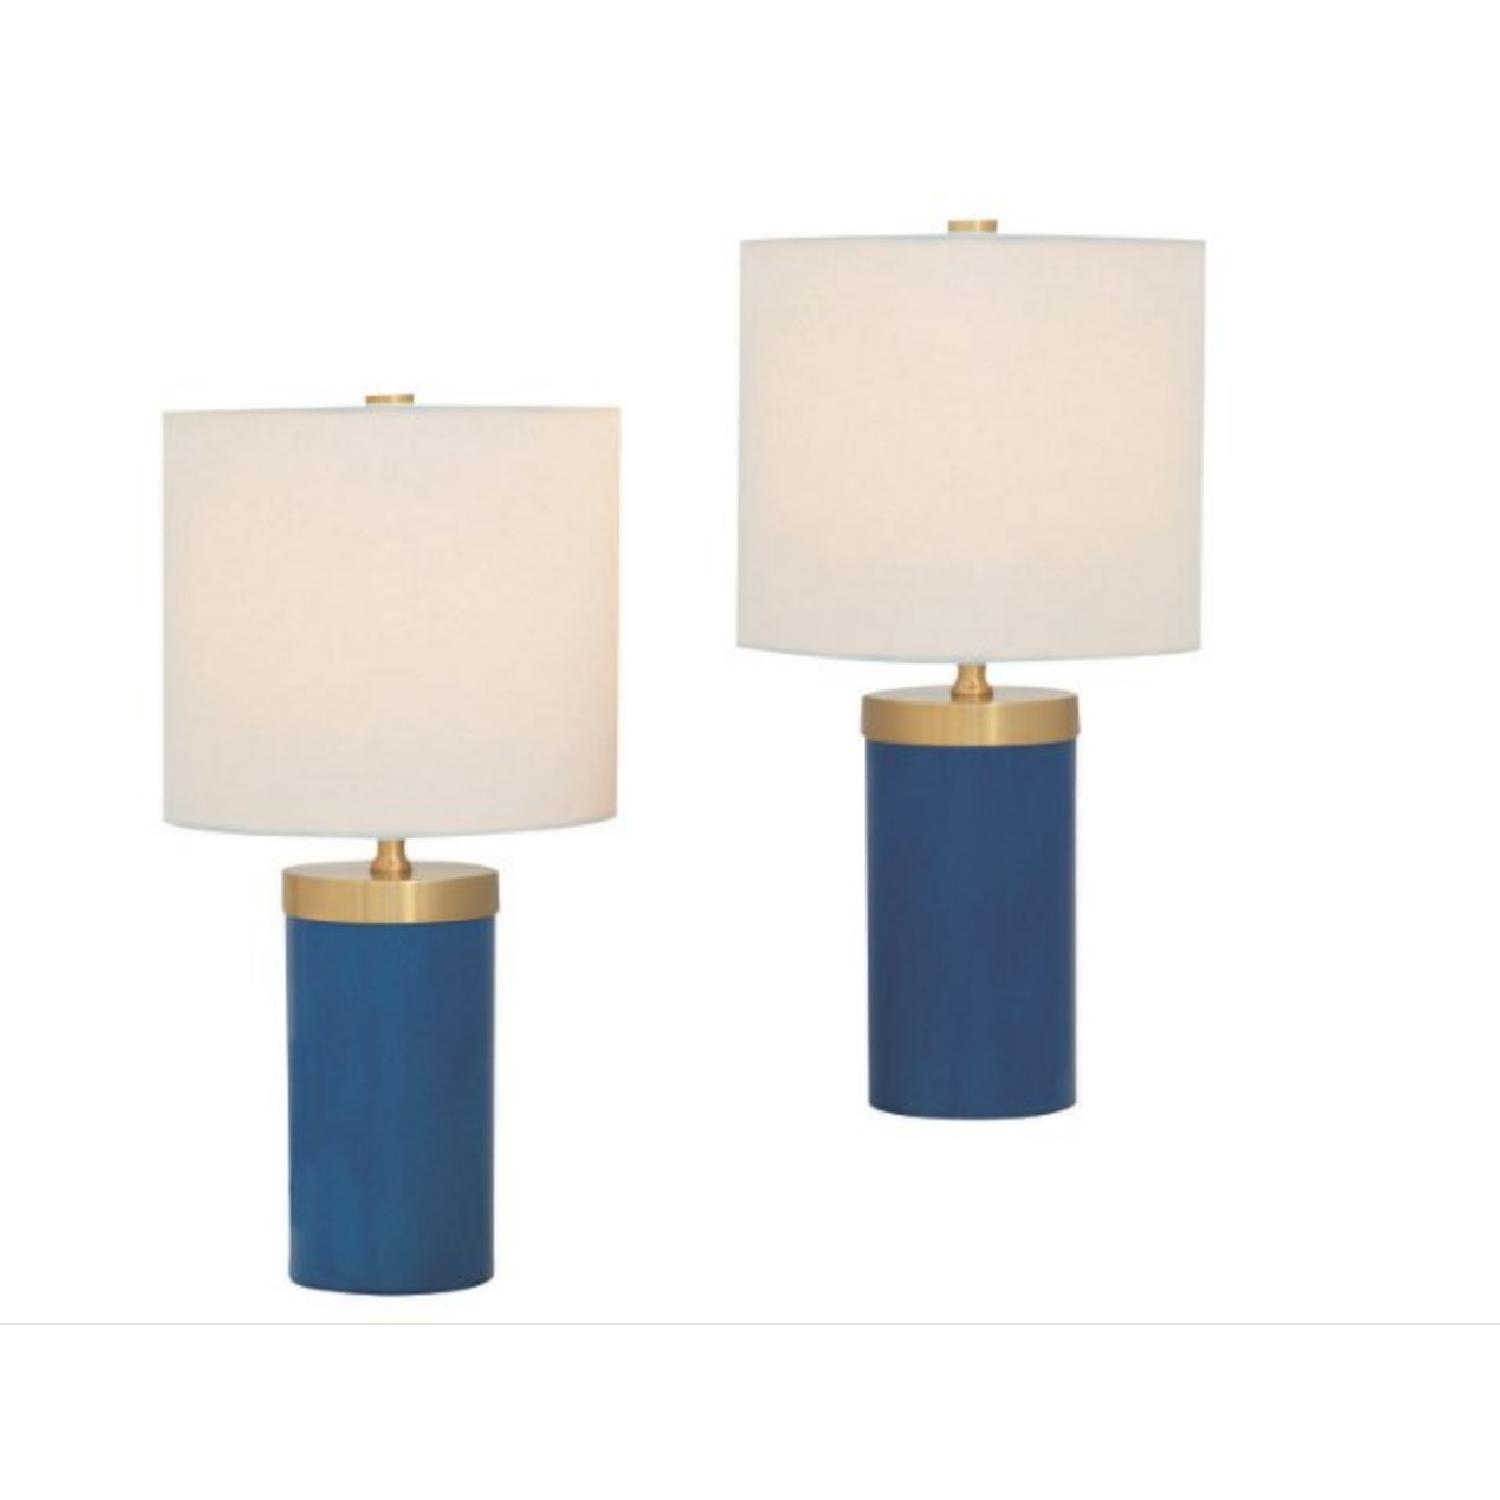 Marty Port 68 S/2 Table Lamps in Turquoise-0